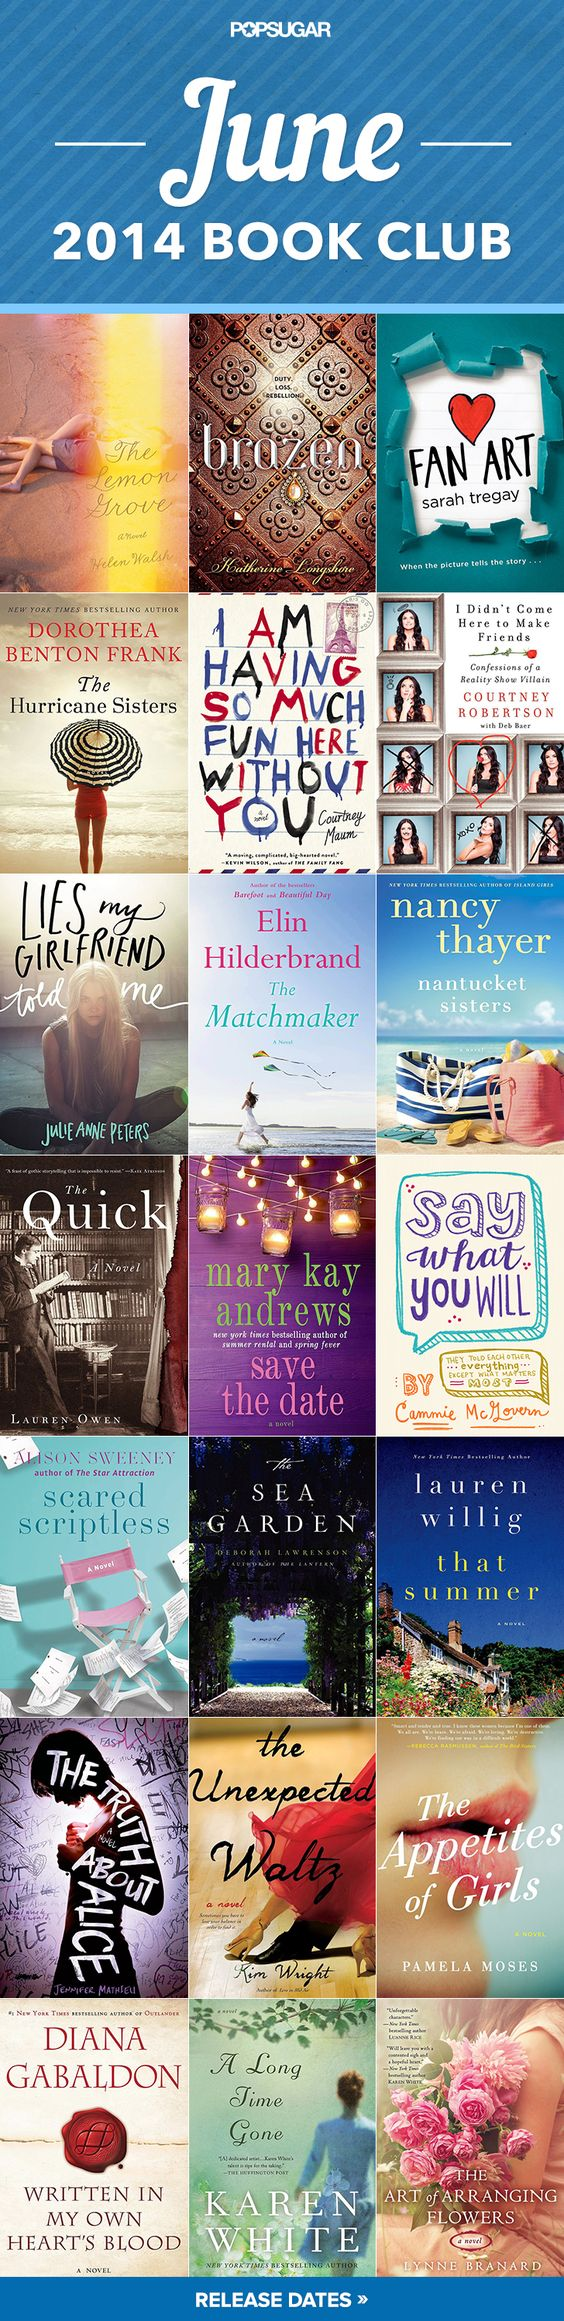 You'll Want To Bring These New June 2014 Books To The Beach For Some